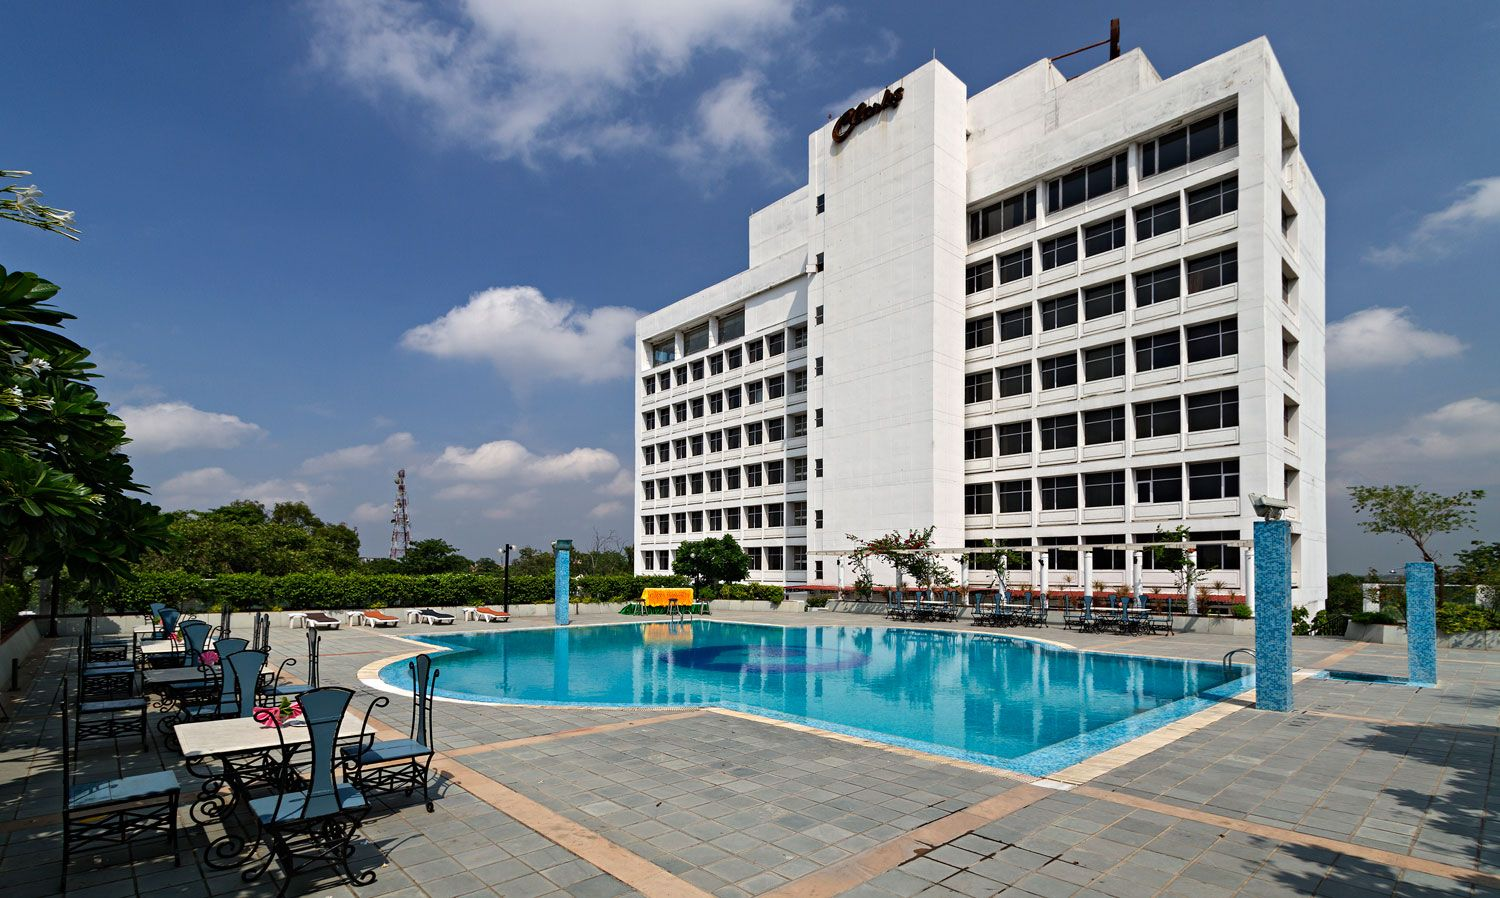 Lucknow Hotel Clarks Avadh 5 Star In